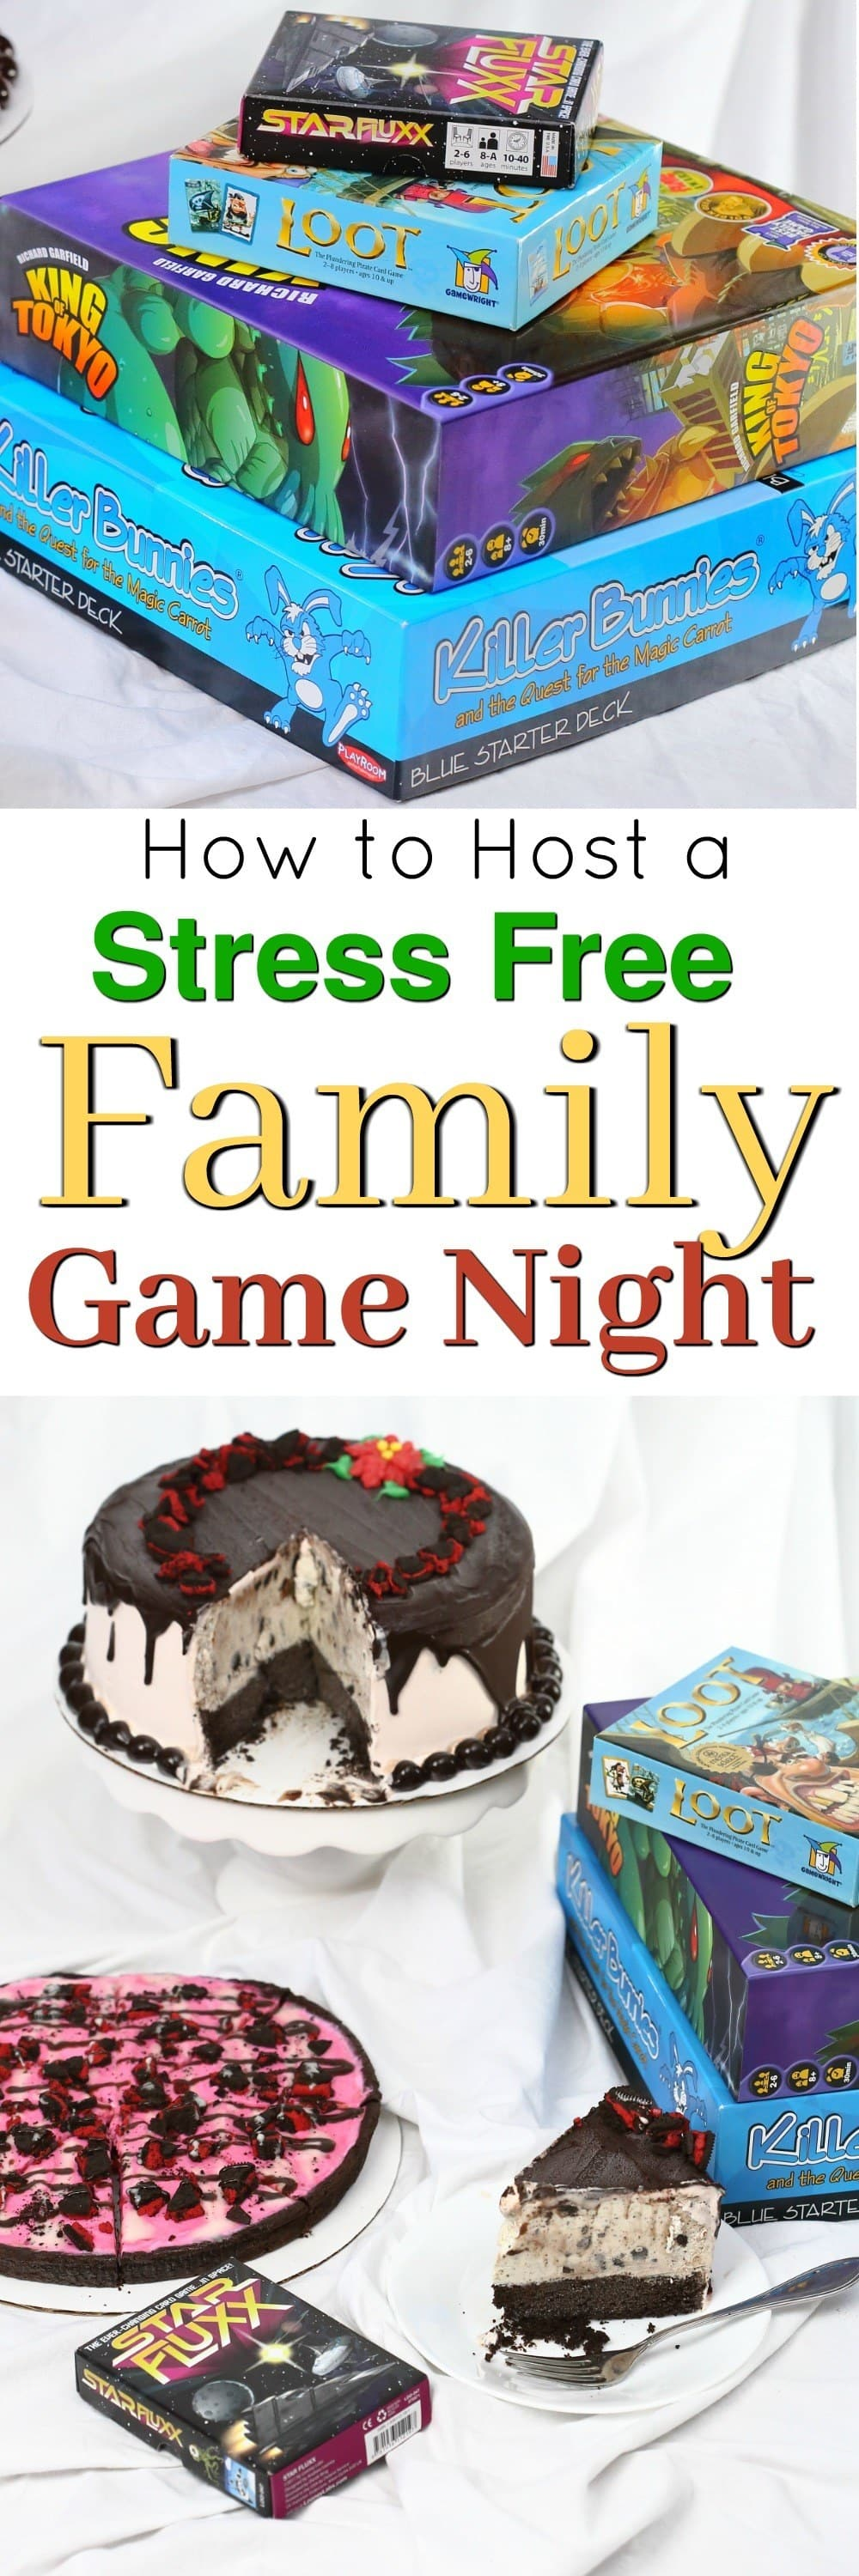 Planning a Family Games Night shouldn't mean more work for mom! Top 5 Tips for a successful and stress-free family game night and create lasting memories!